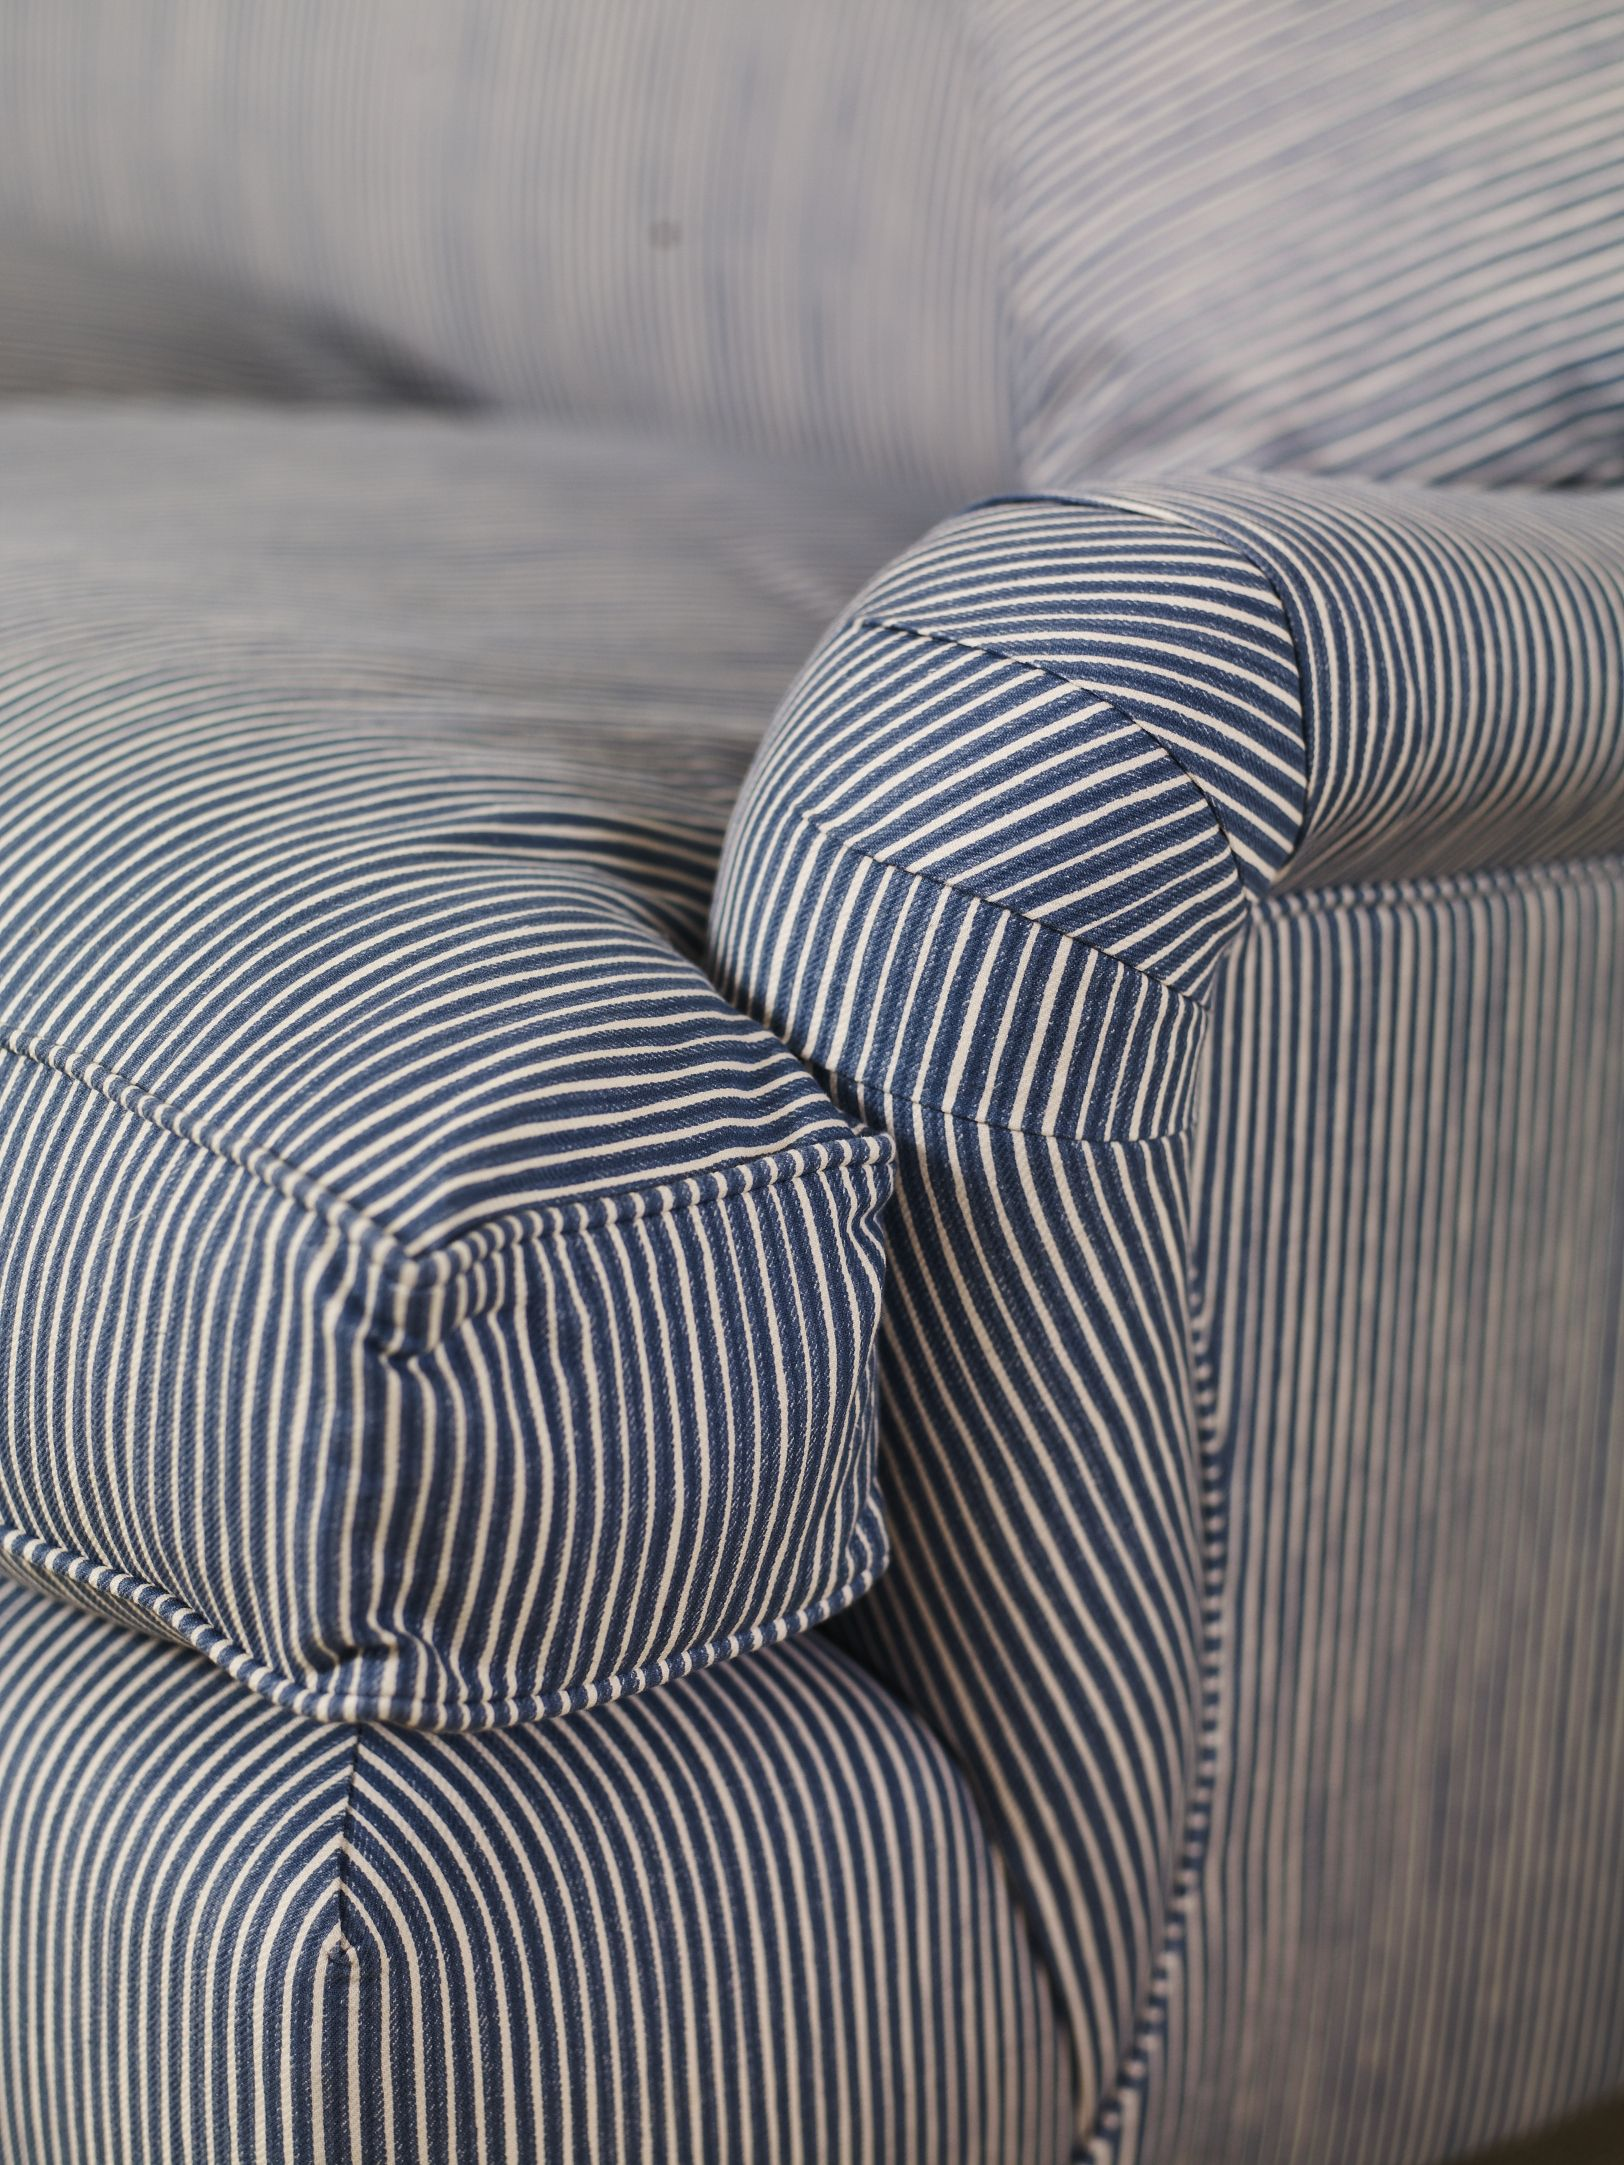 Fermoie Poulton Stripe in Blue x George Smith Sofa | Fermoie on ...